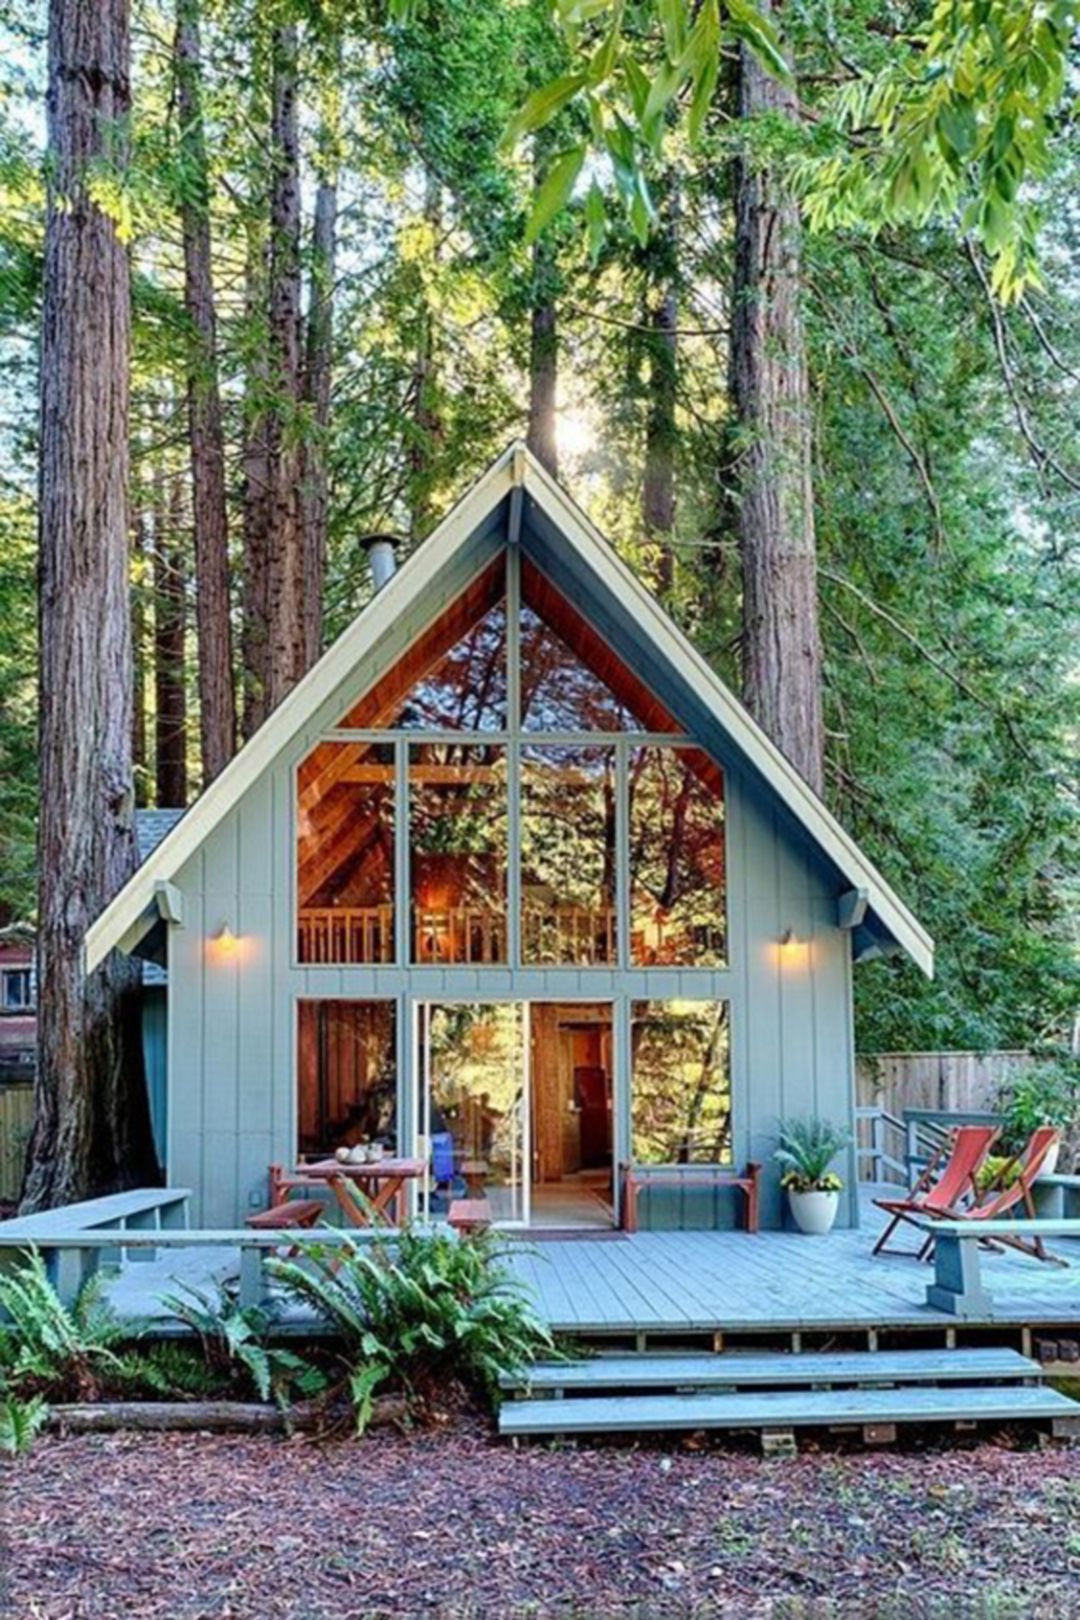 15 Awesome Tiny House Design Ideas For Your Family Cabins And Cottages Cabins In The Woods Tiny House Design